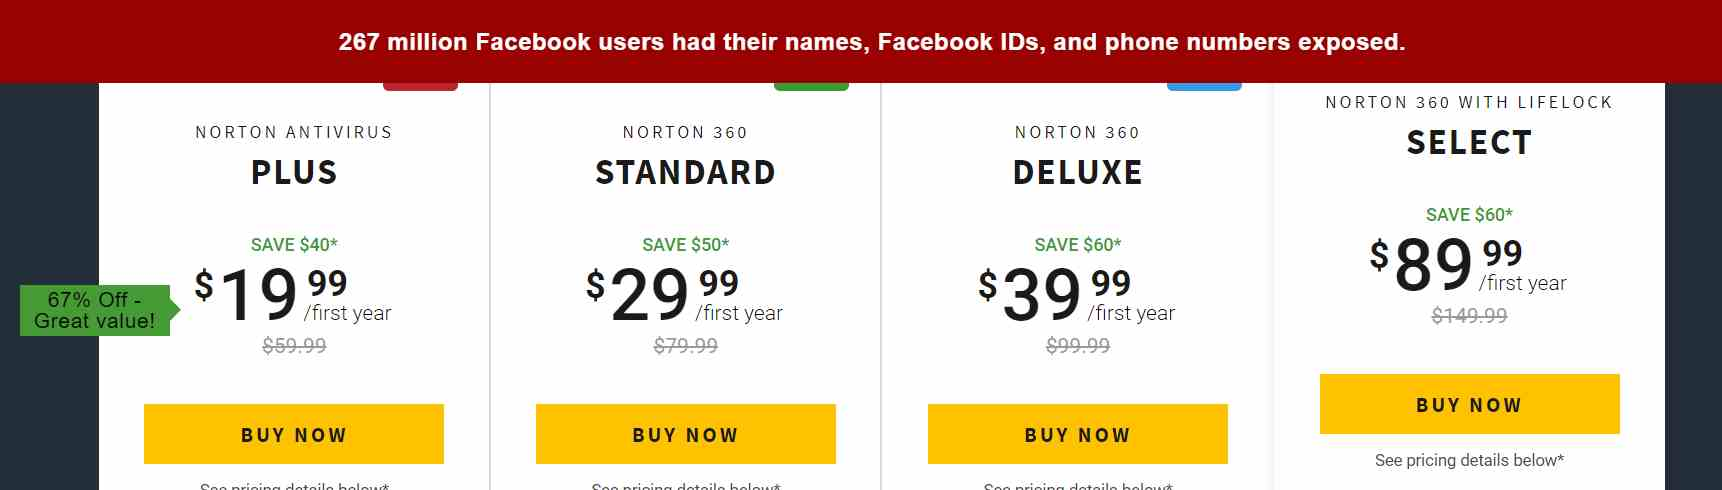 Norton Antivirus Plus Coupon